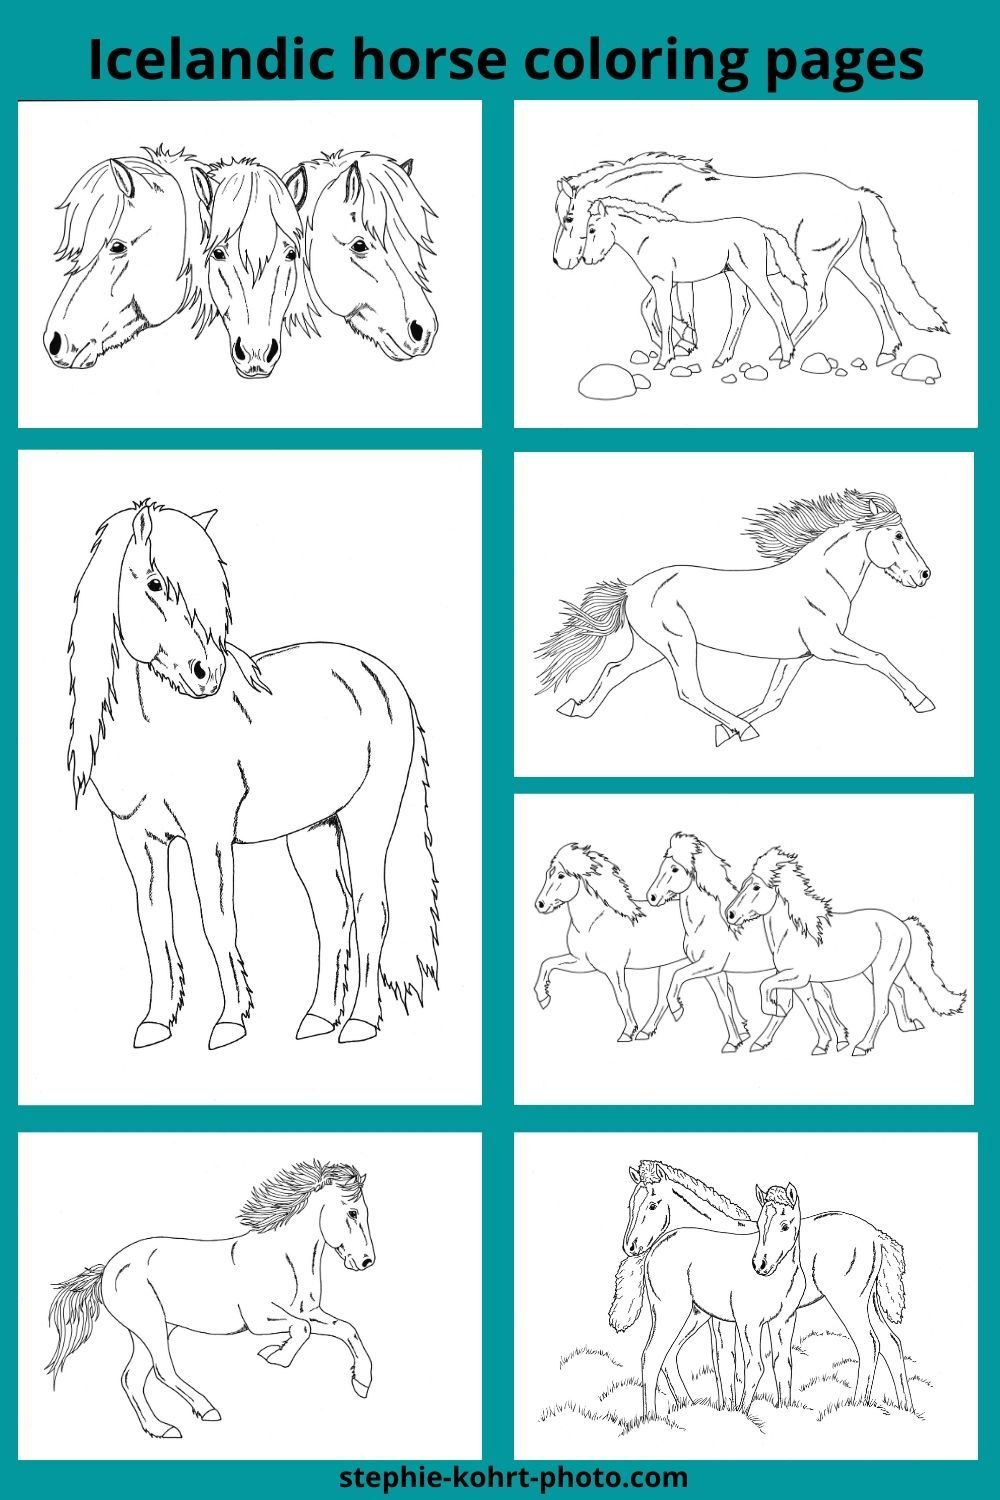 Icelandic Horses Coloring Pages Pdf Download Horse Coloring Pages Horse Coloring Coloring Pages